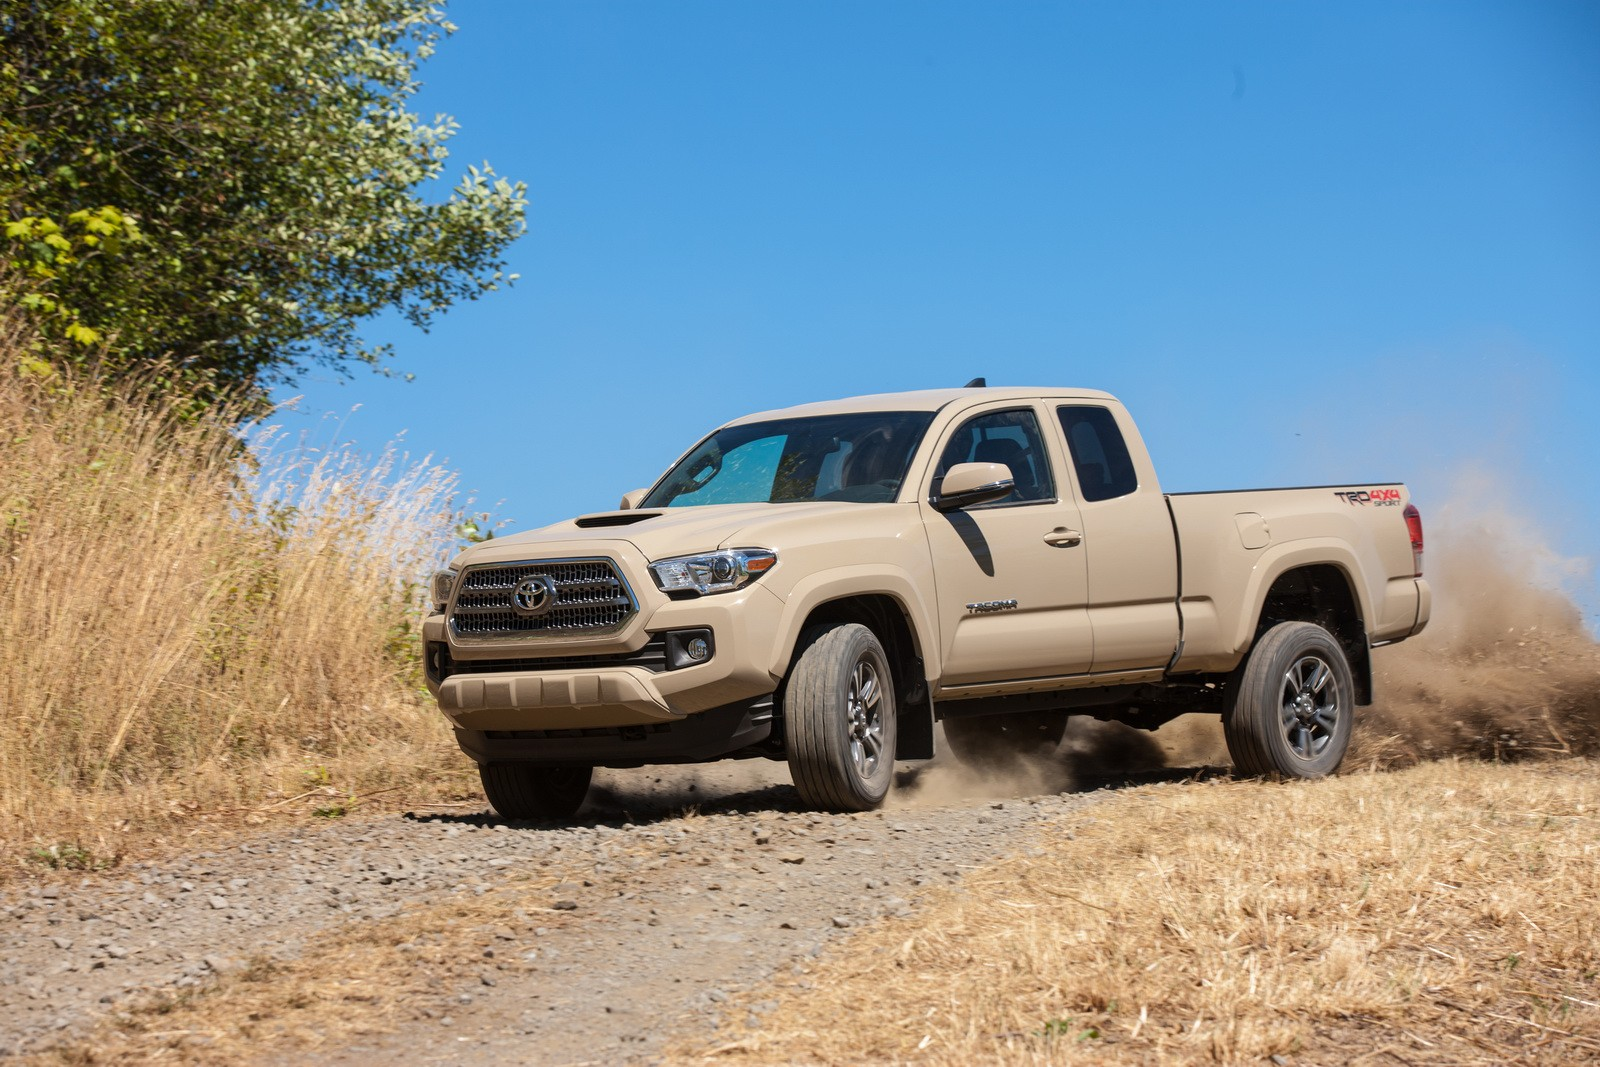 2016 Toyota Tacoma Price Revealed, Prepare $22,300 for the ...